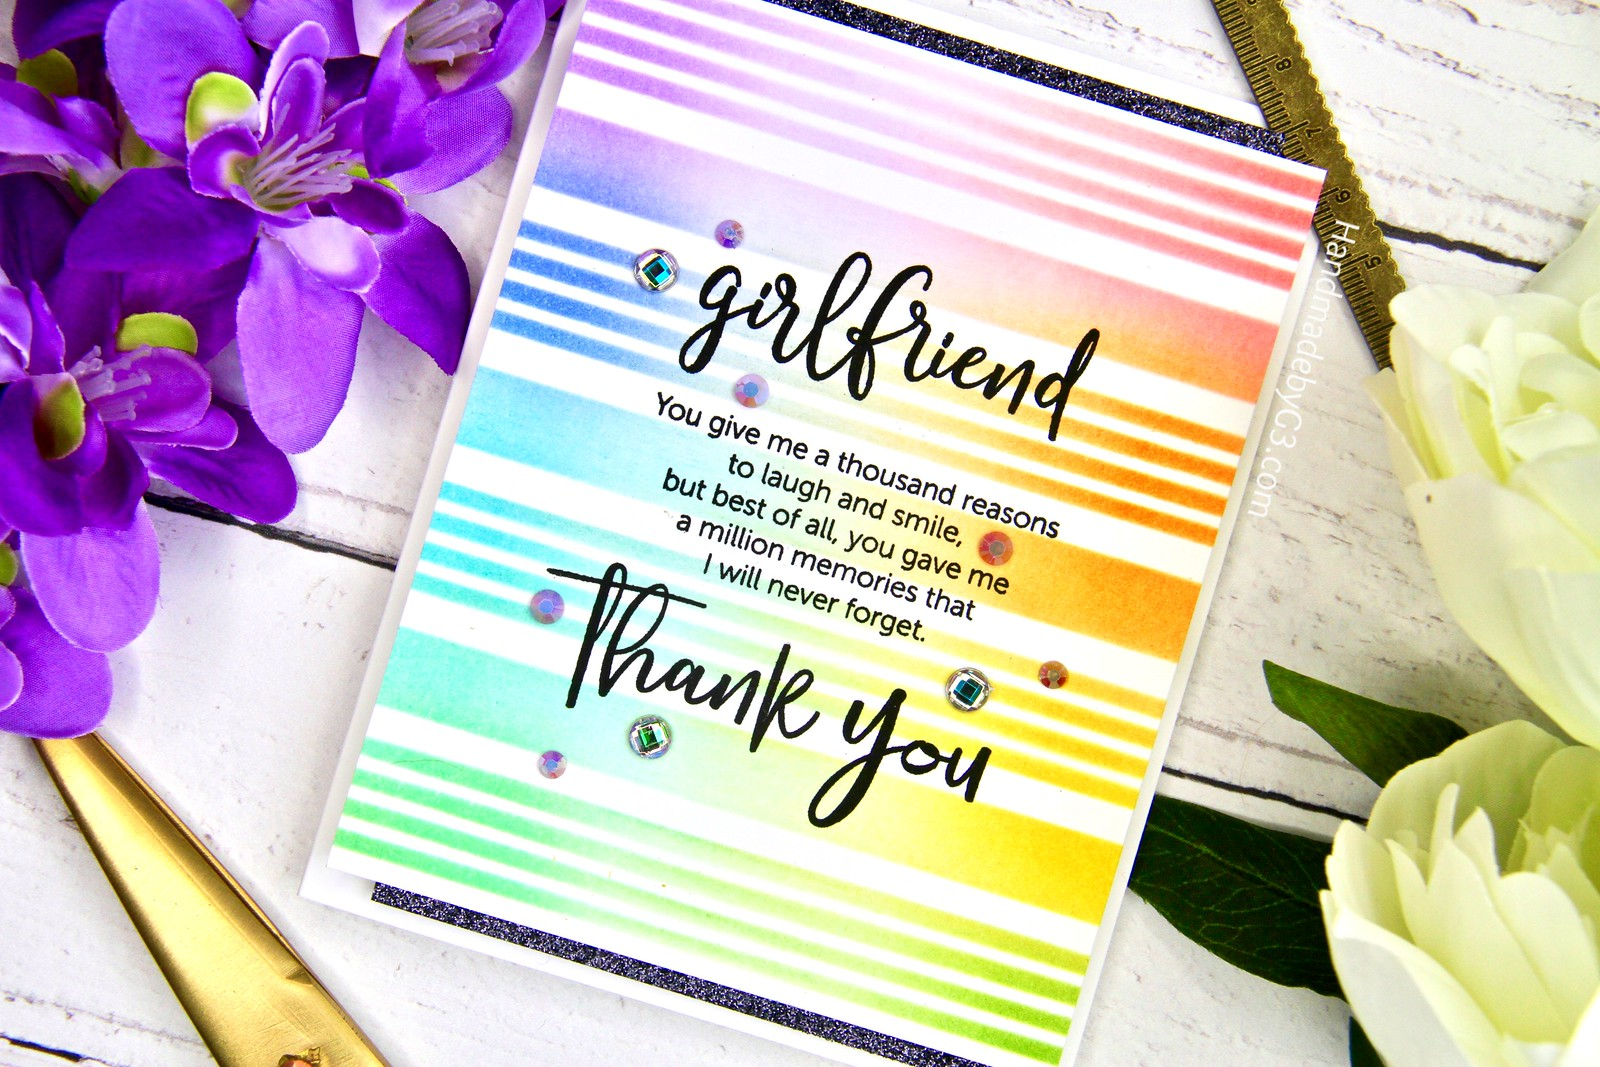 SSS Girlfriend card